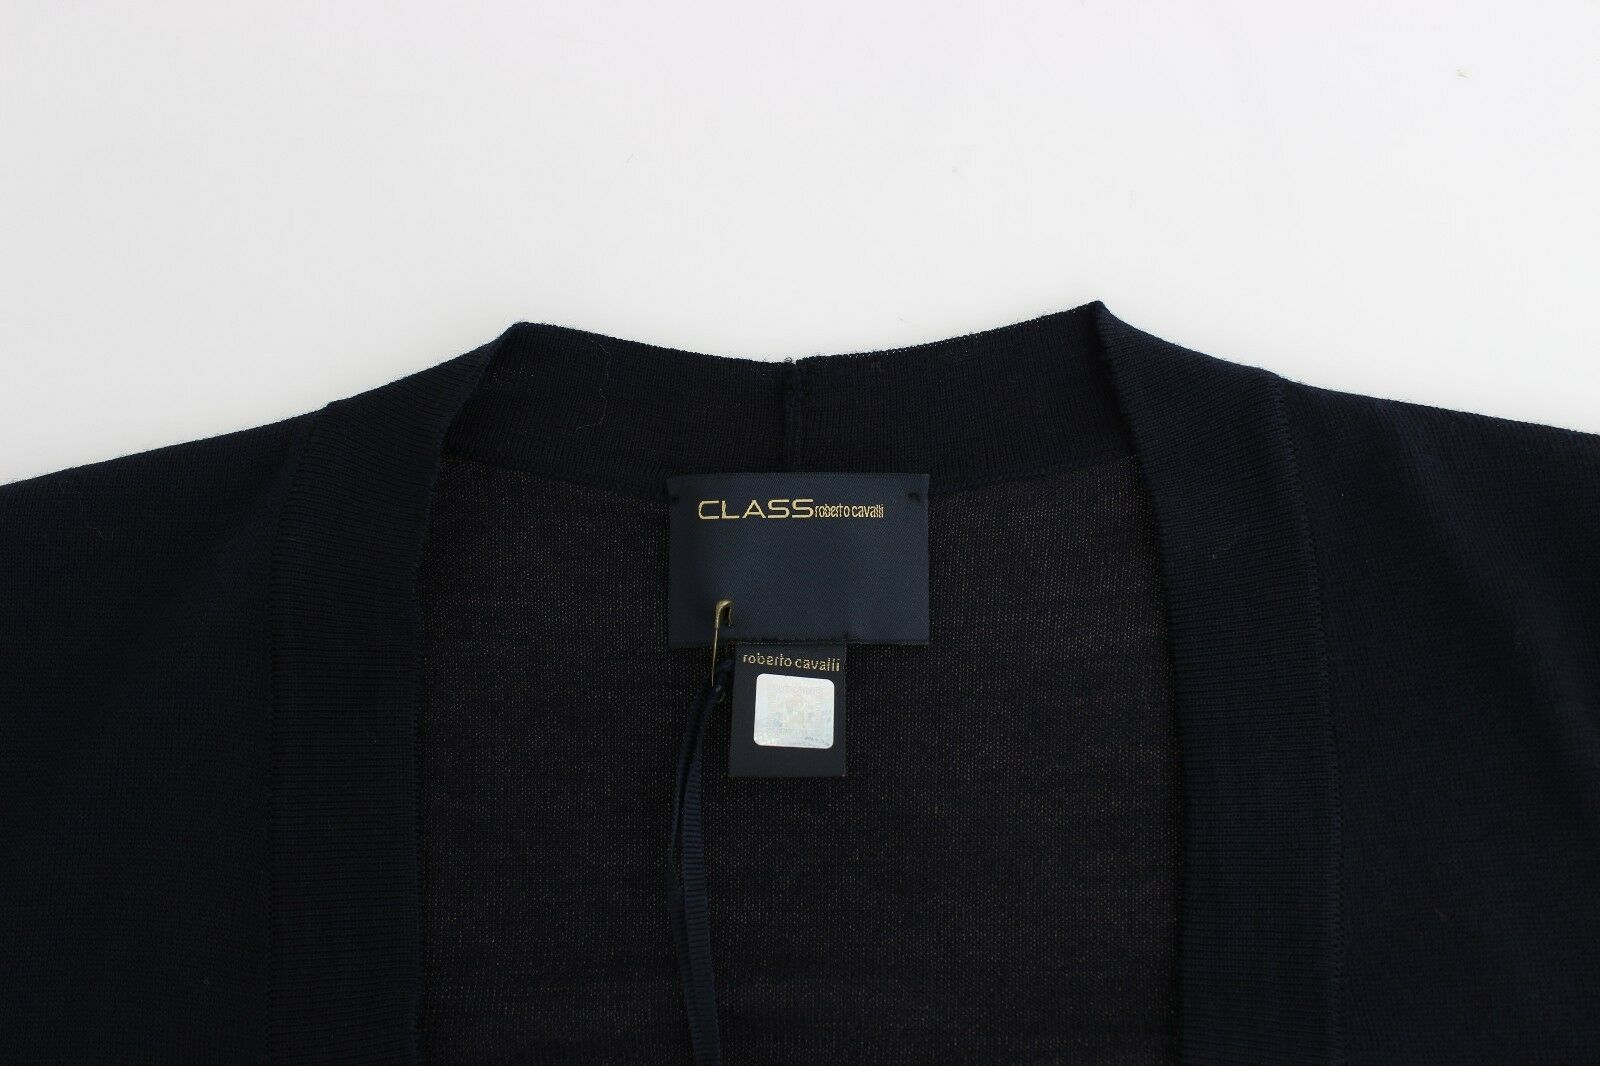 NEW  400 CLASS ROBERTO CAVALLI Cardigan Cardigan Cardigan bluee Wool Cropped Shrug Jumper IT46 US10 6ee360